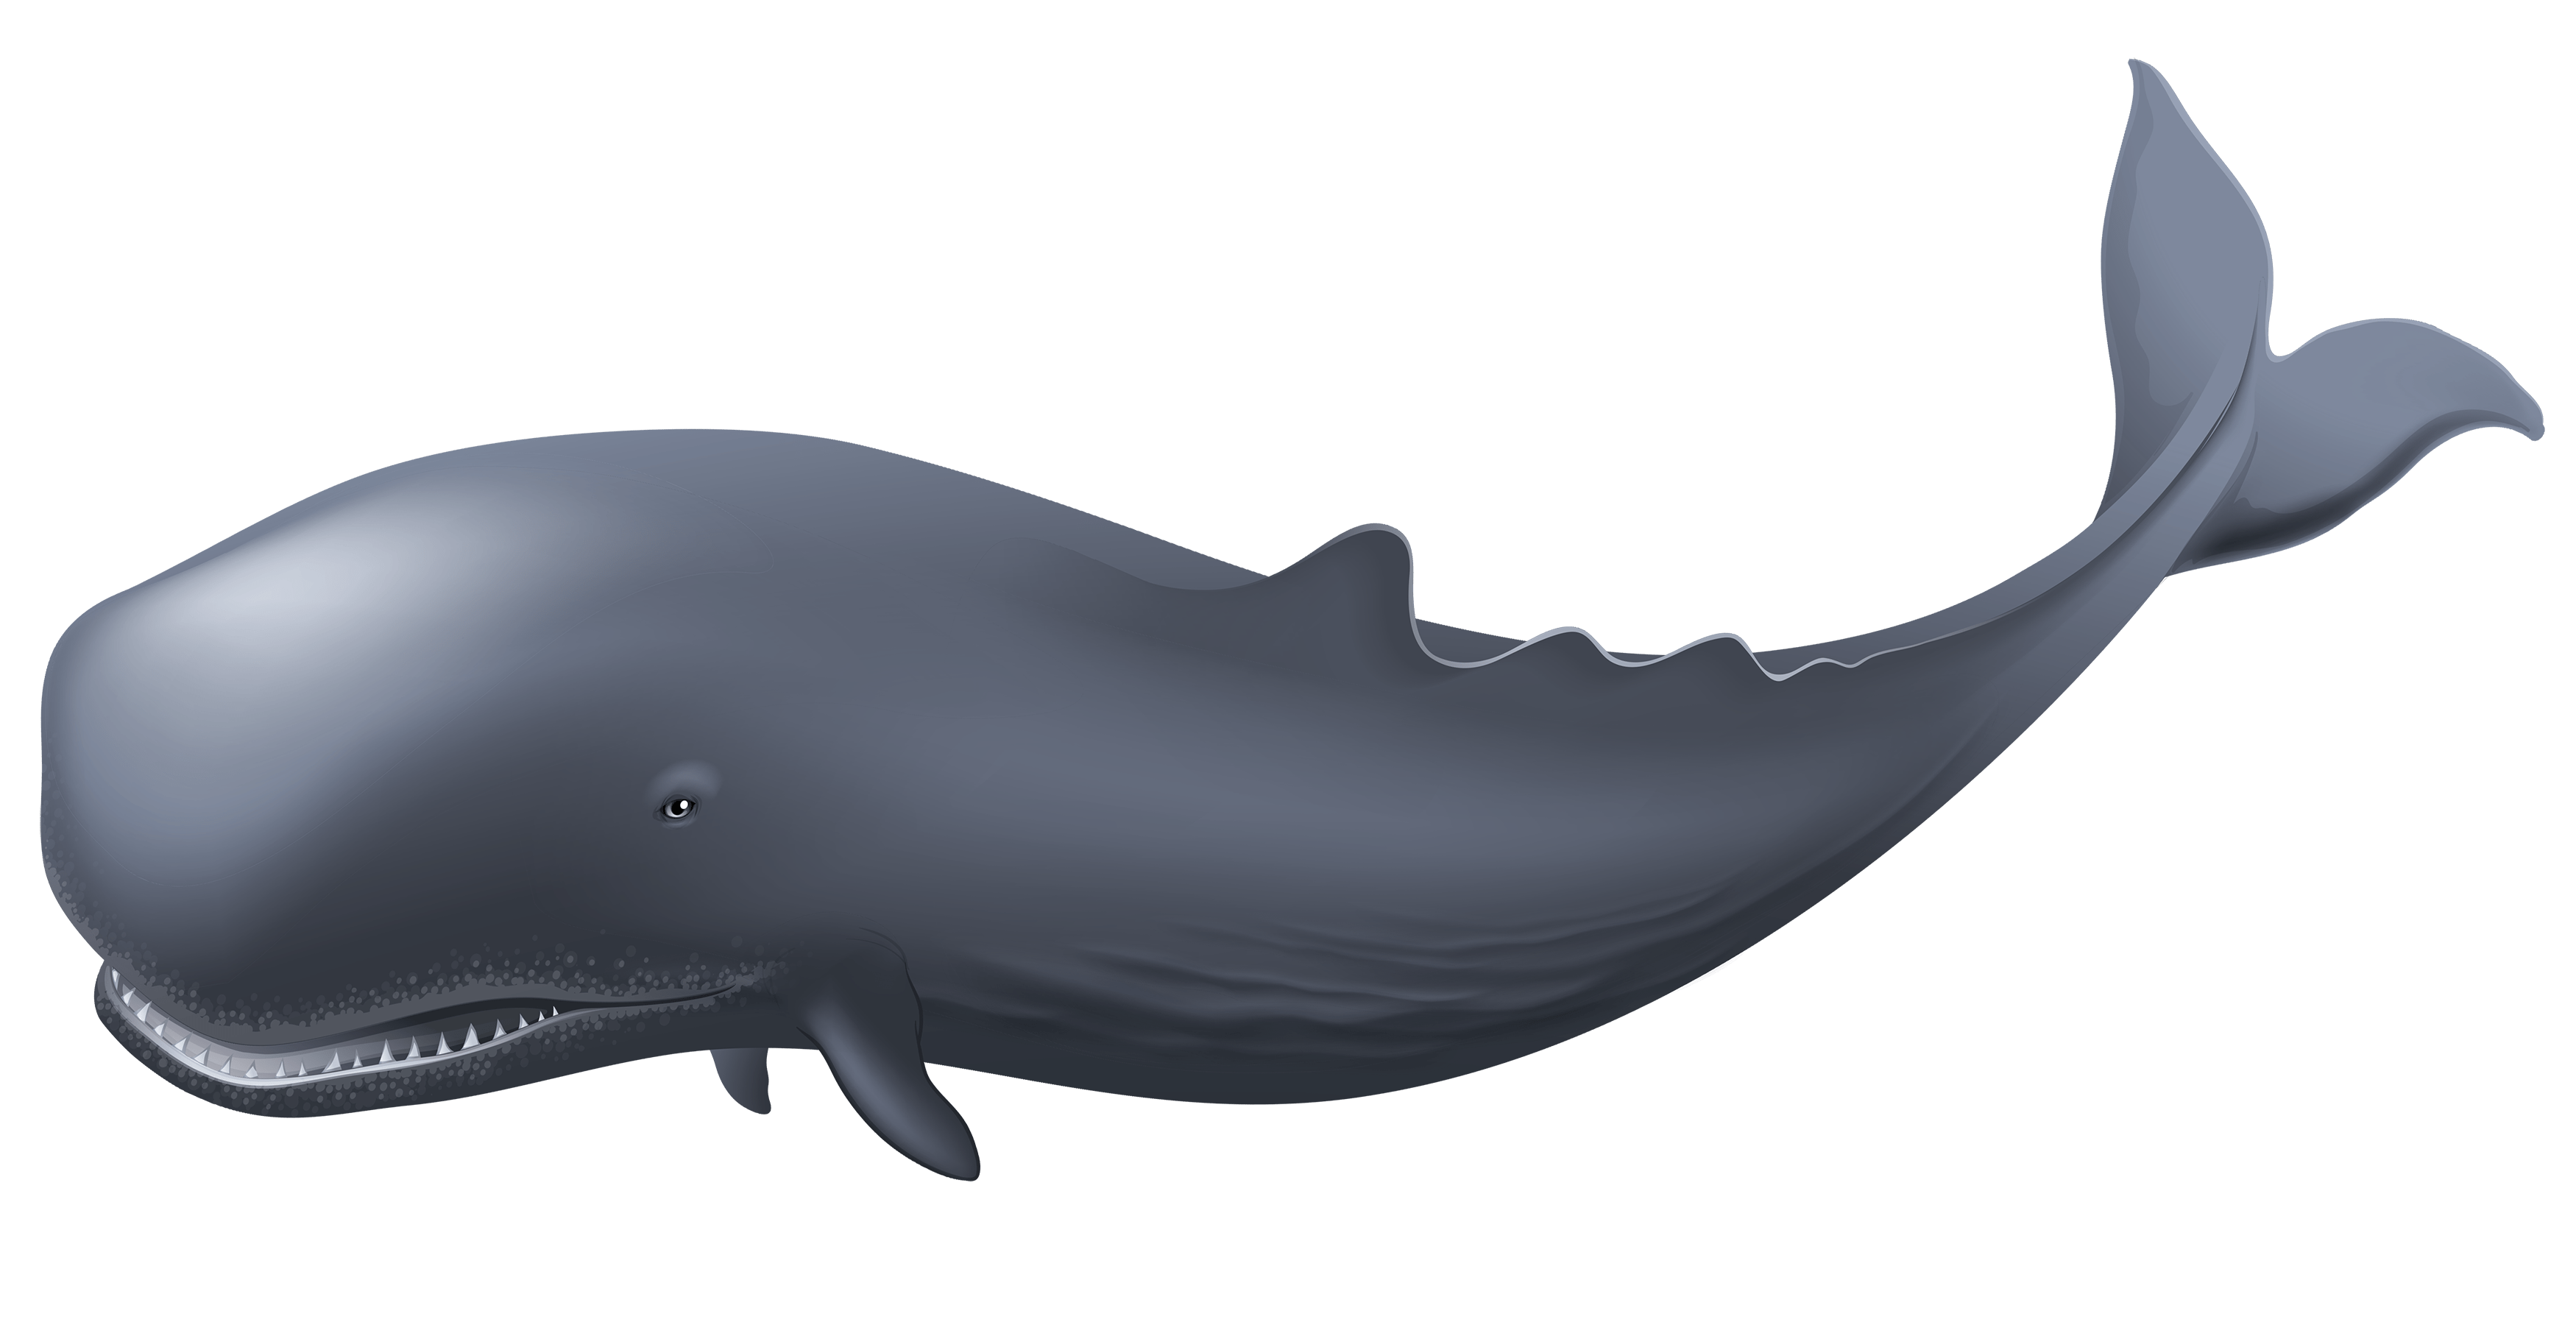 Diving clipart whale. Water creatures reference pinterest